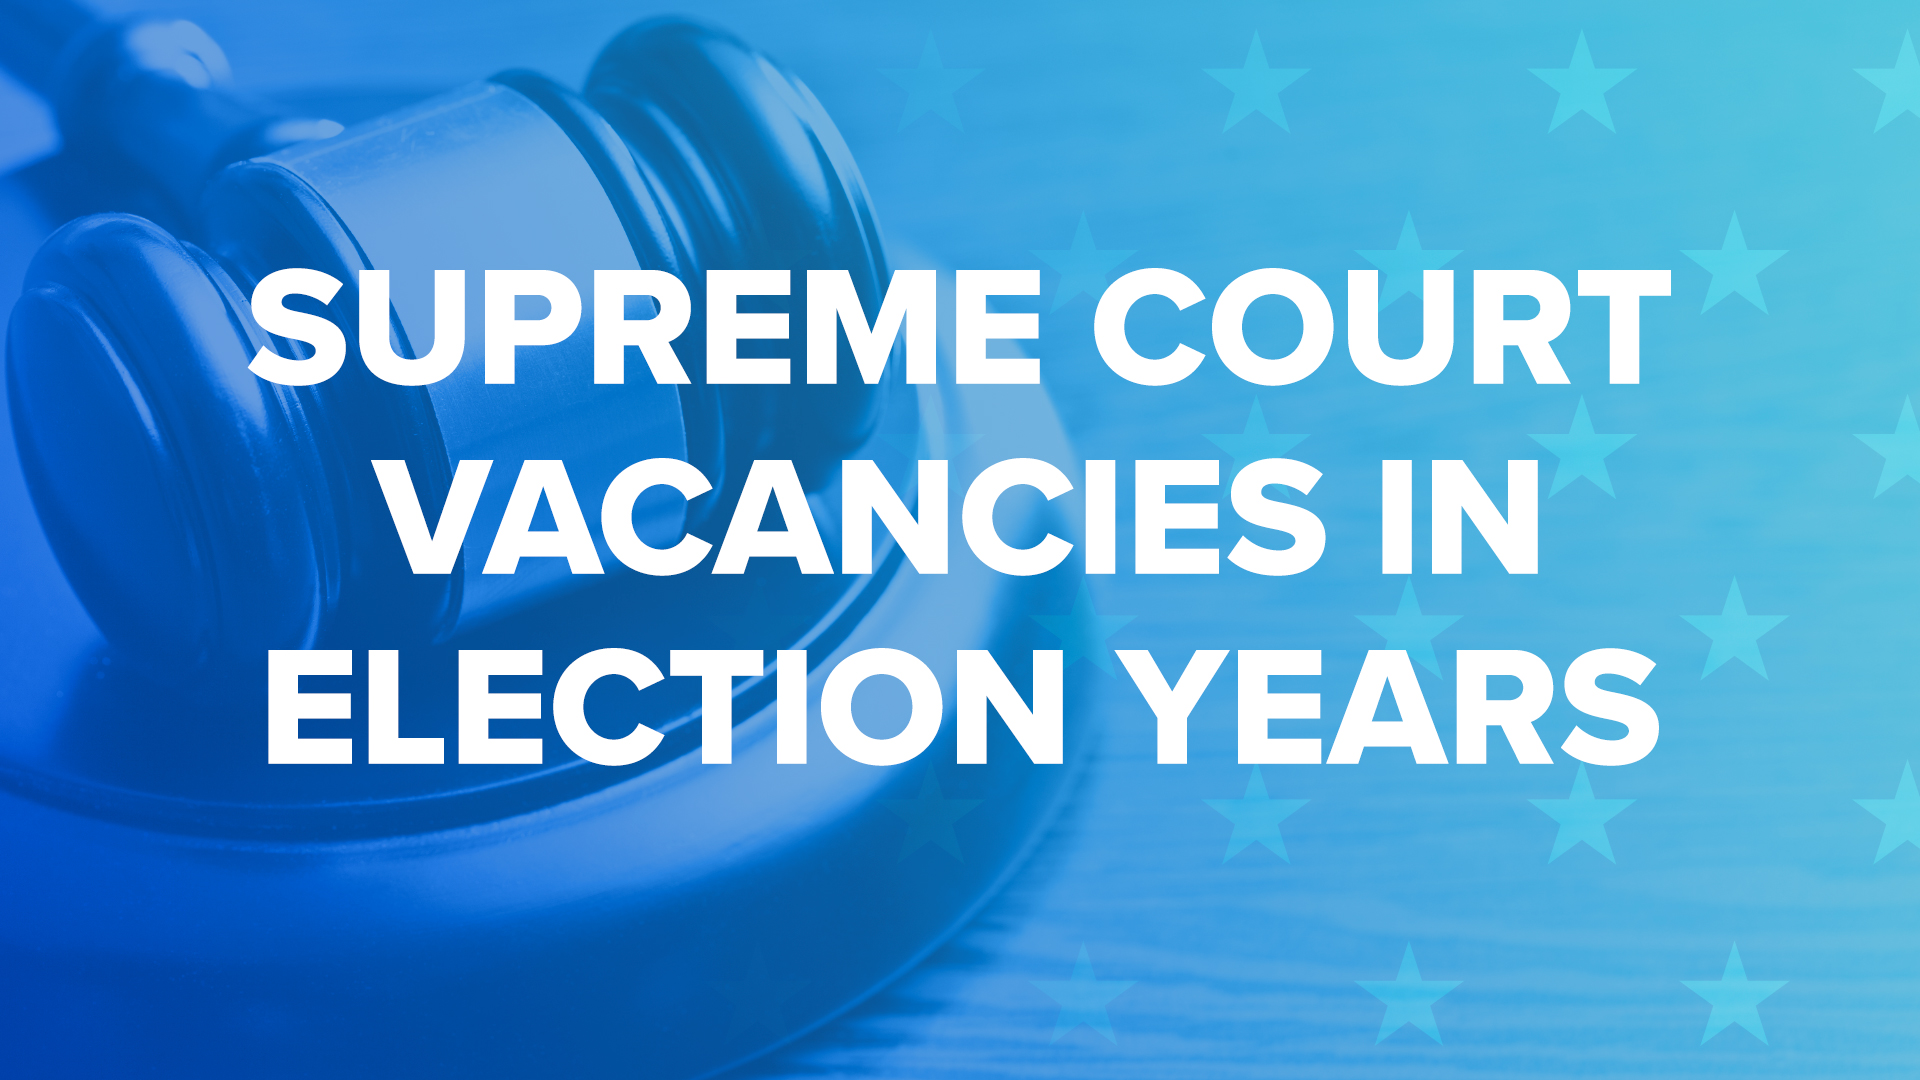 Supreme Court Vacancies In Election Years